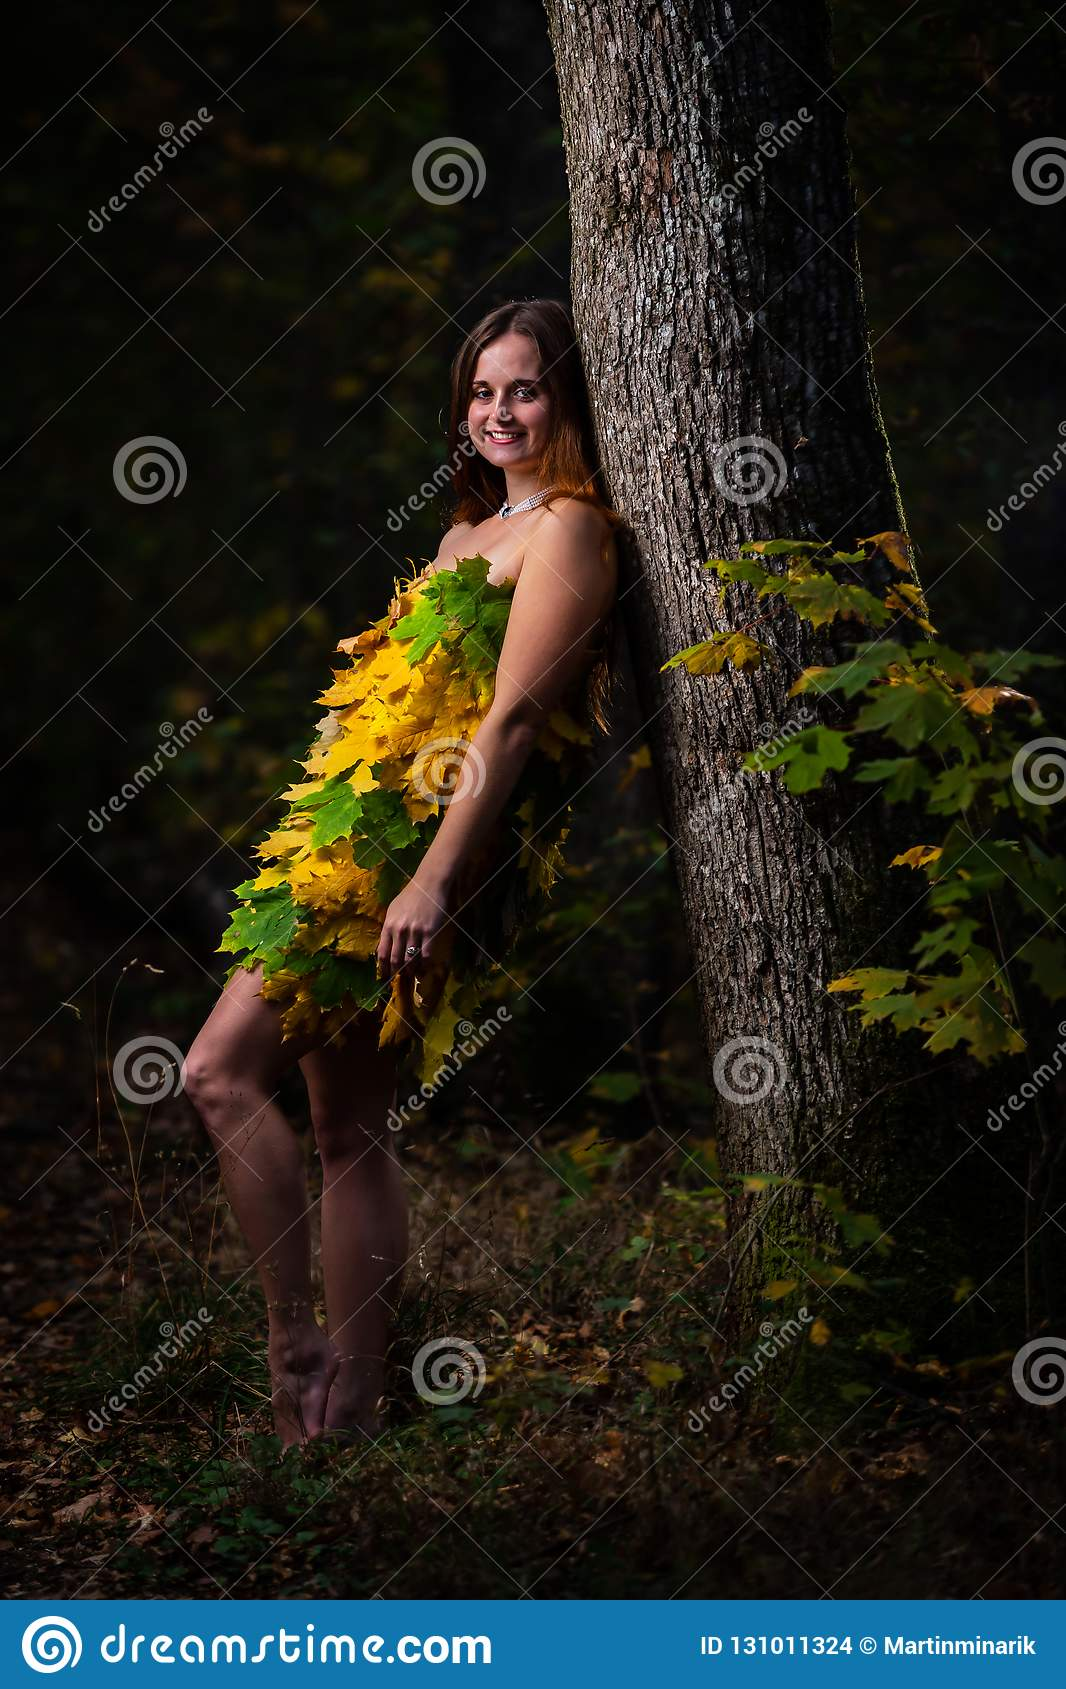 Beautiful young girl with long hair leaning to the tree, wearing dress made from colorful leaves in the autumn forest